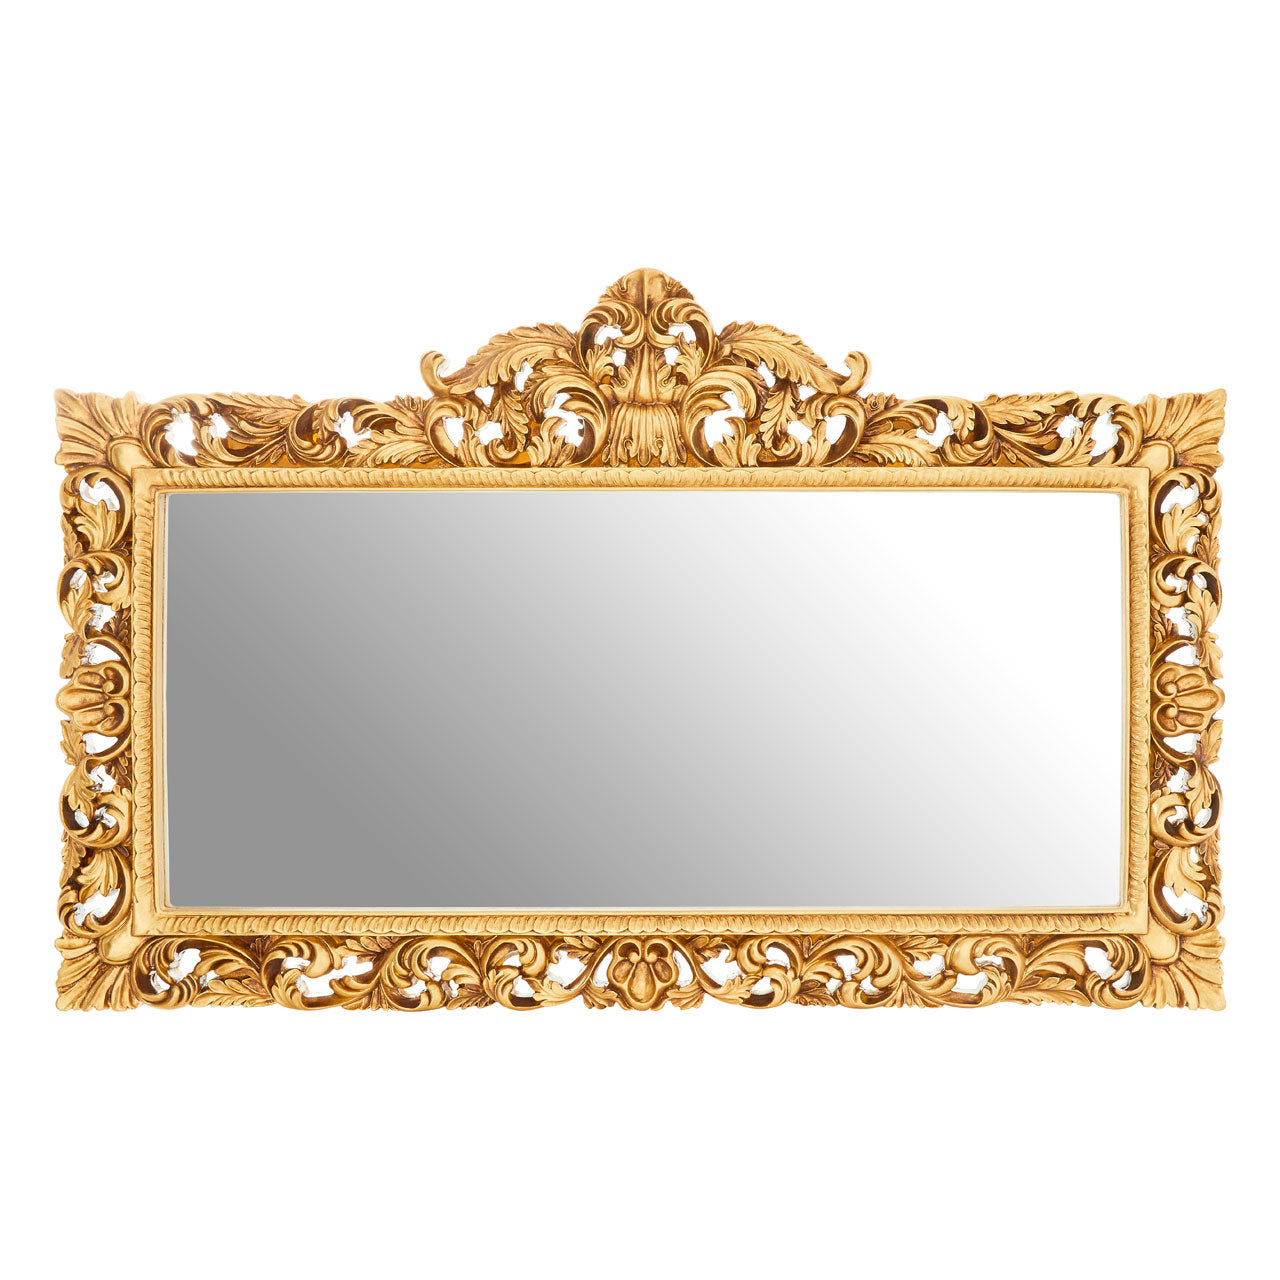 Marseille Buds Wall Mirror Gold